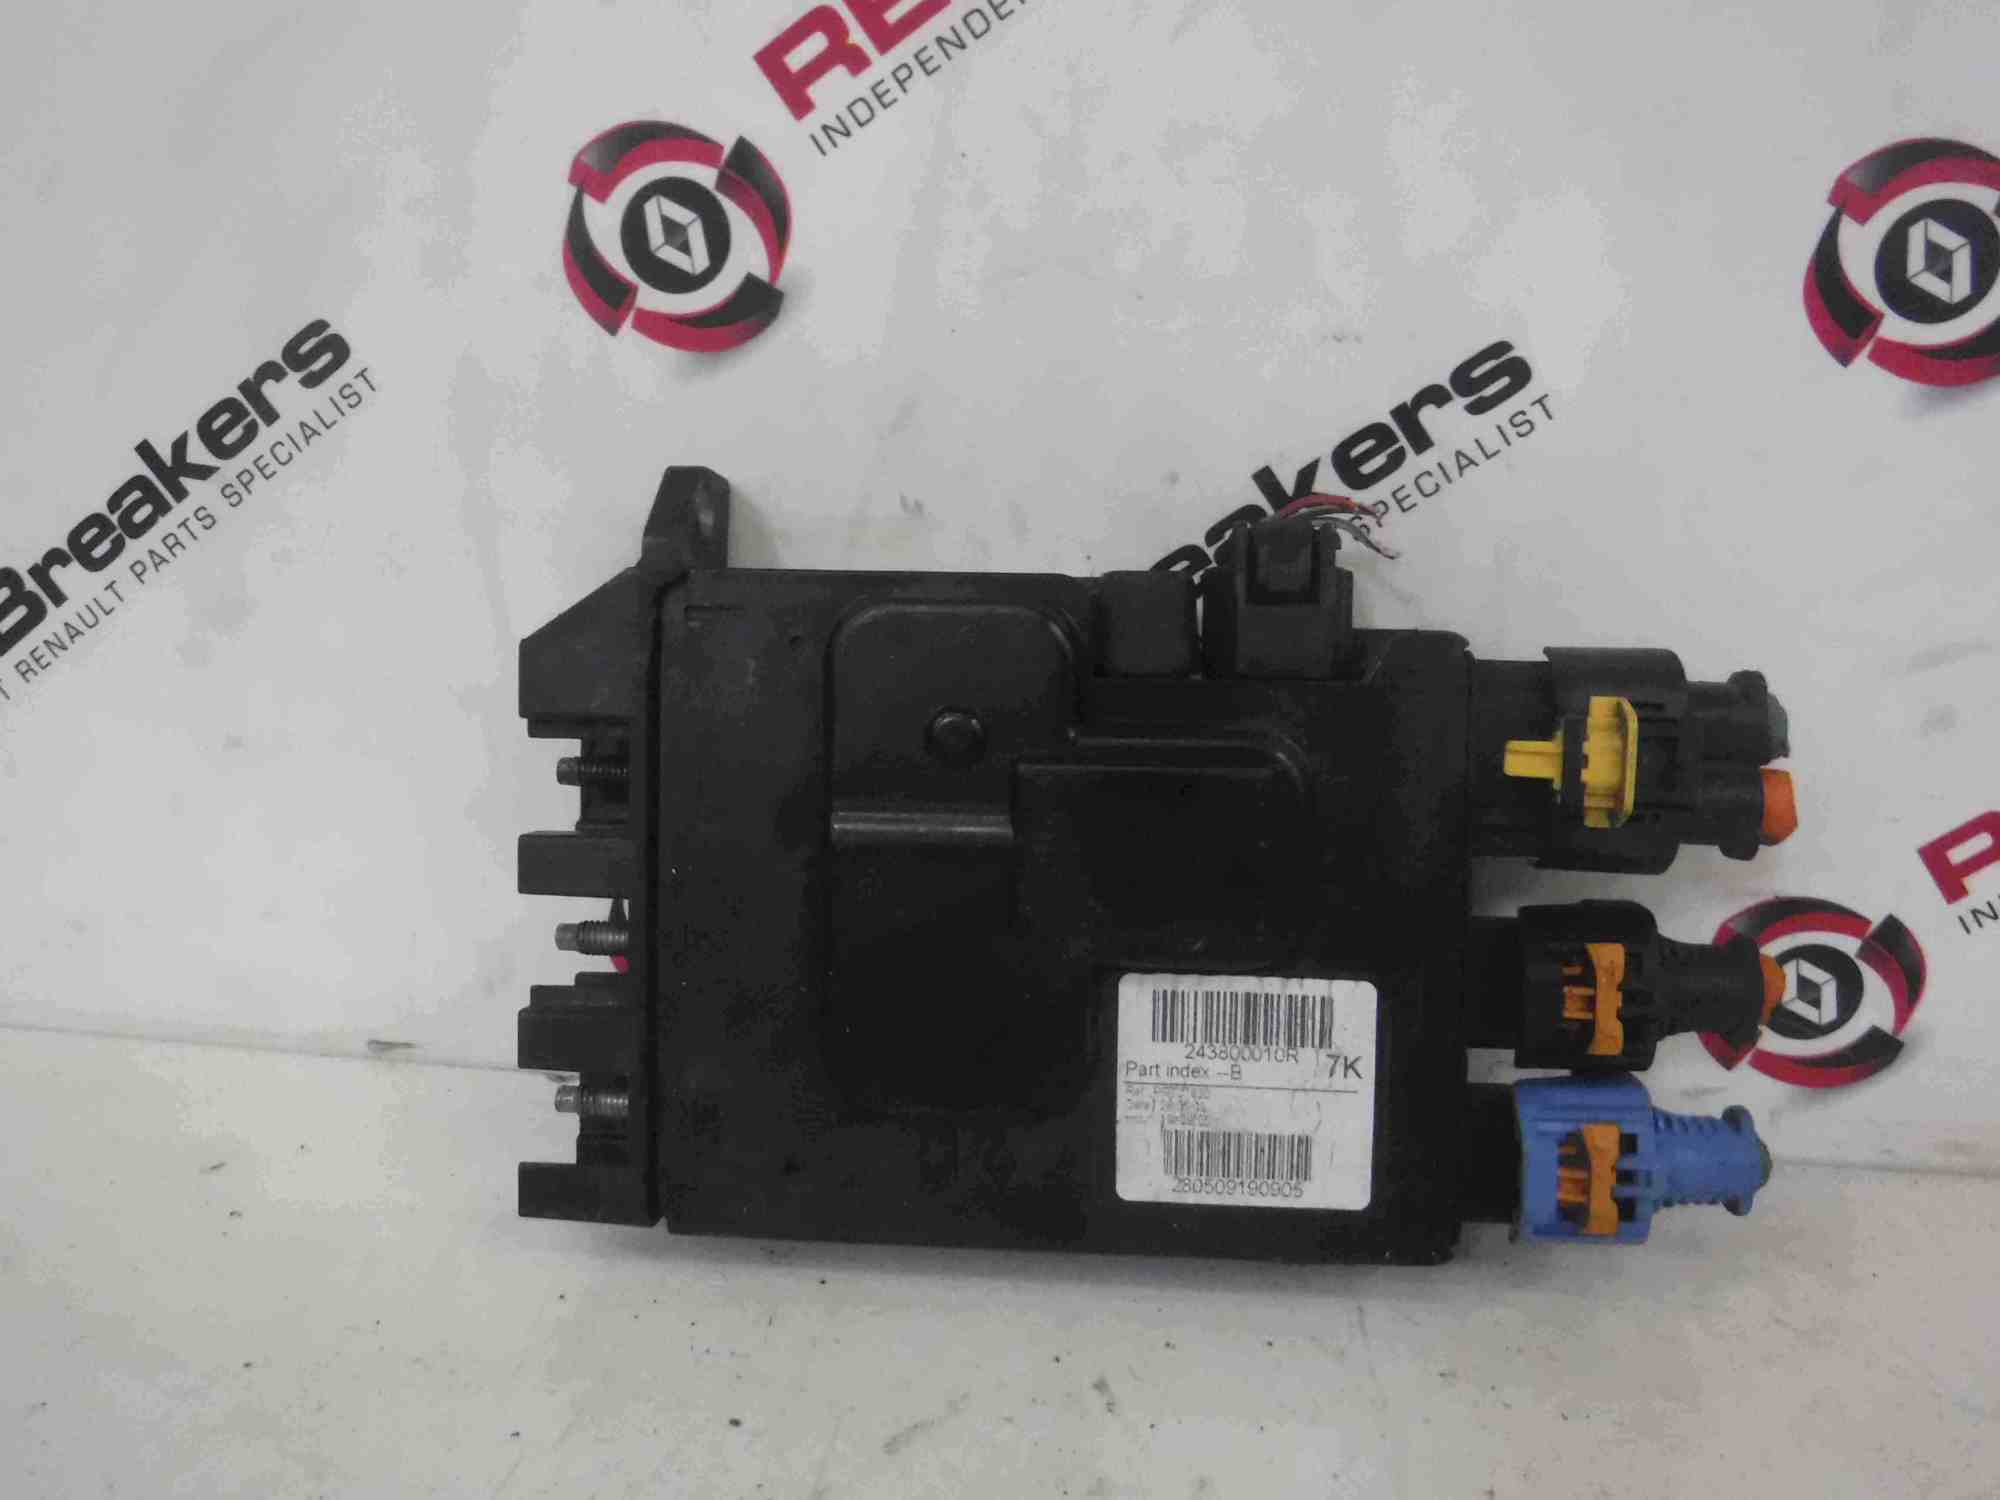 hight resolution of renault megane battery fuse box wiring diagram centre renault megane battery fuse box